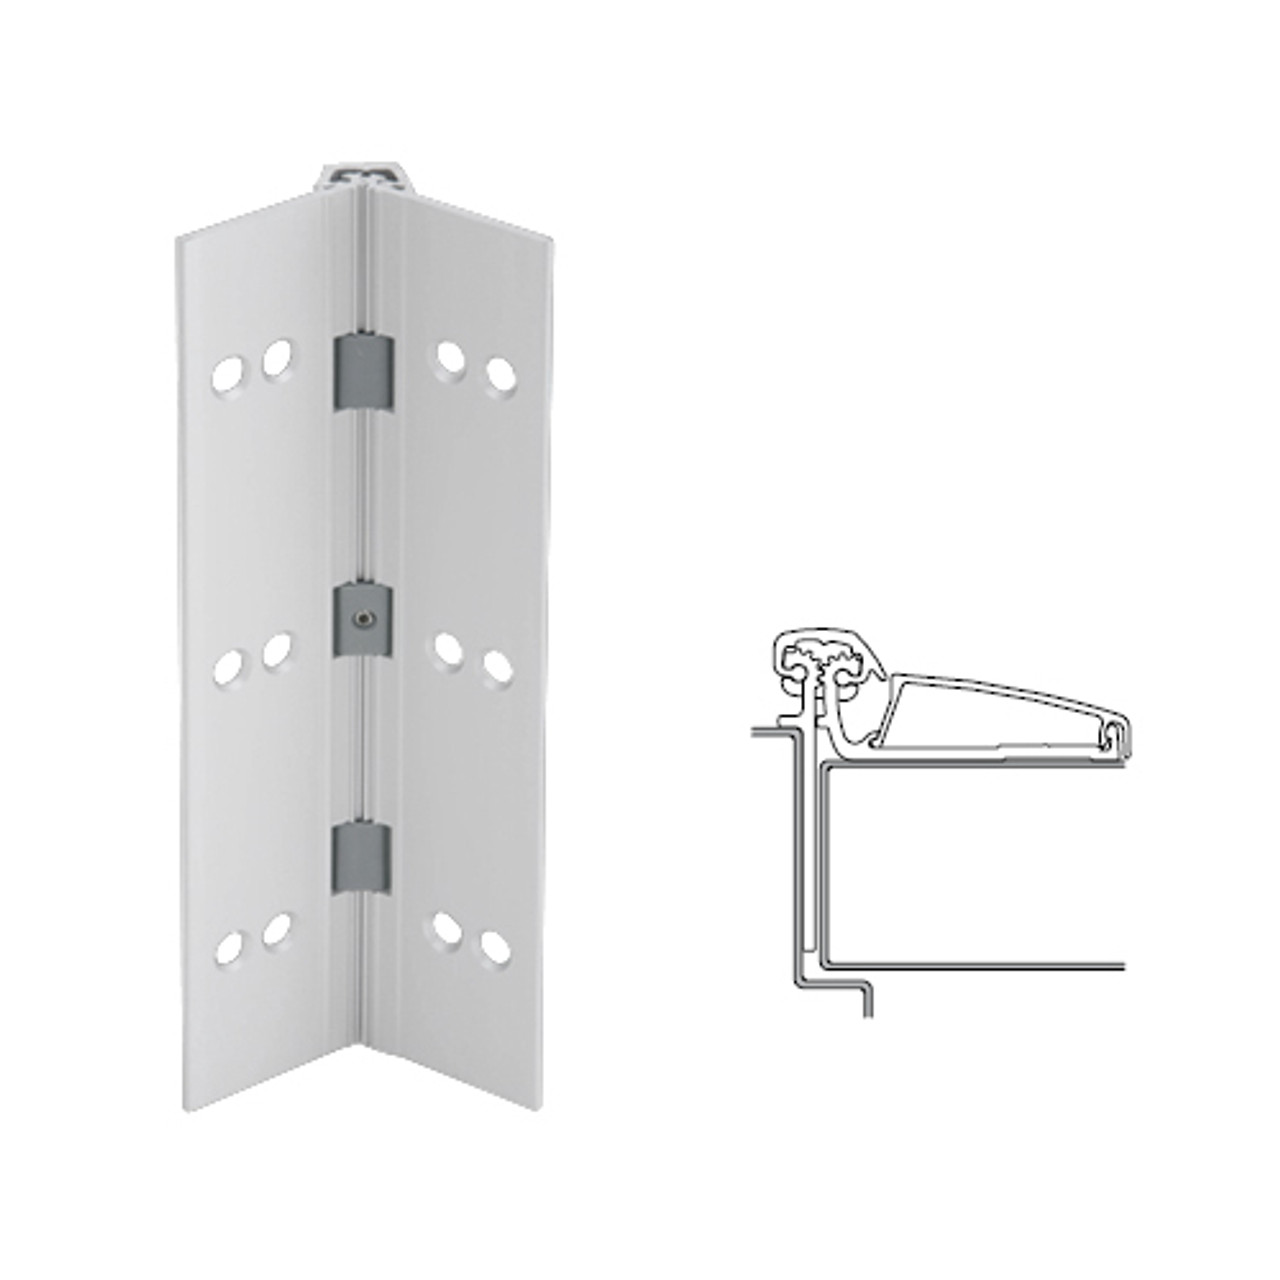 046XY-US28-120-TF IVES Adjustable Half Surface Continuous Geared Hinges with Thread Forming Screws in Satin Aluminum